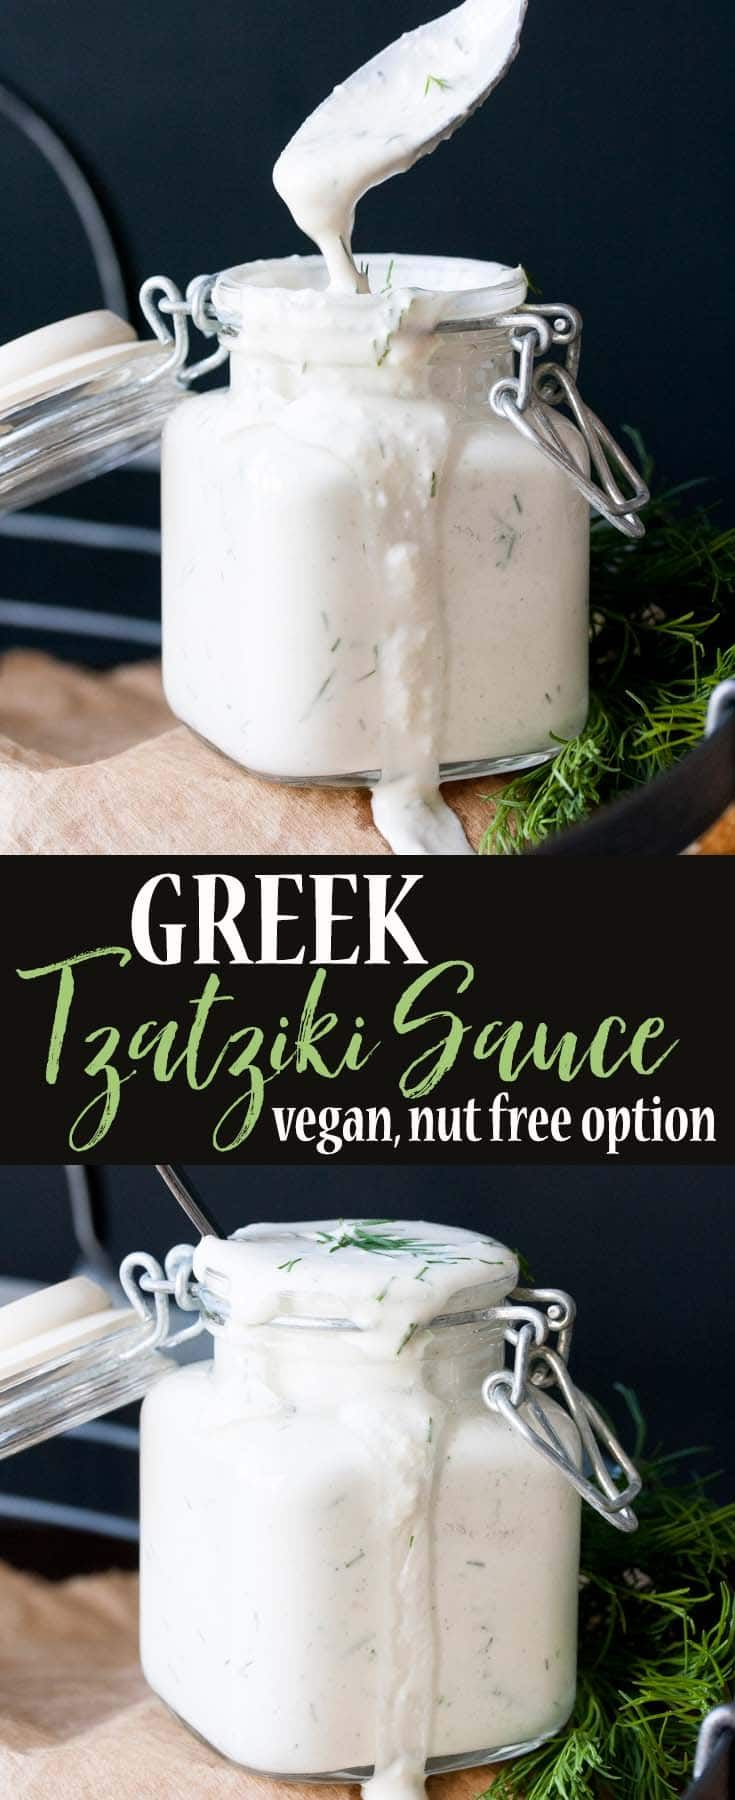 This authentic vegan tzatziki is like no other. Creamy, garlicky, and perfect for dipping, smothering, or licking off your fingers! #vegan #plantbased #wholefoods #glutenfree via @veggiesdontbite